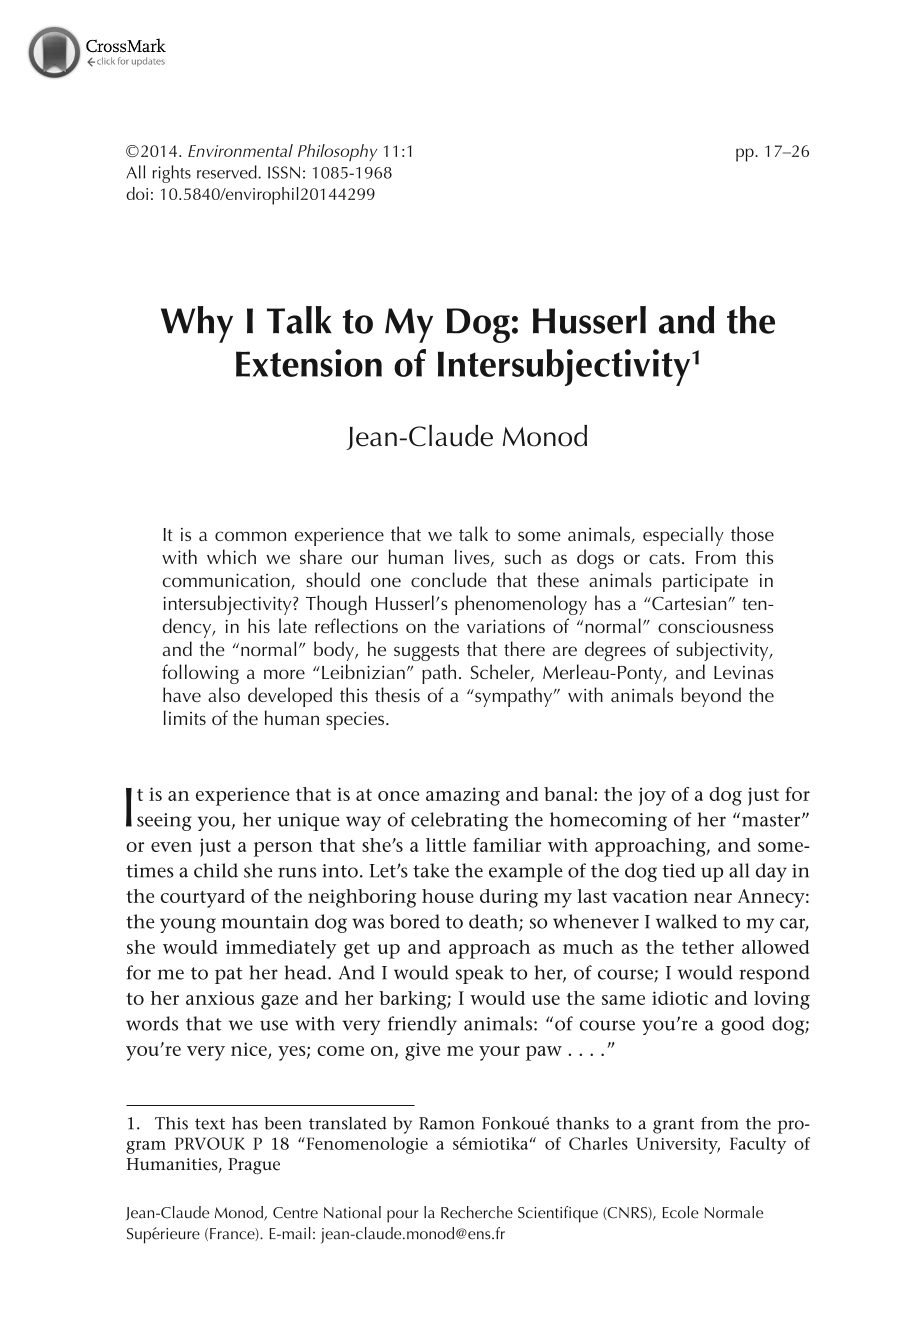 why i talk to my dog husserl and the extension of  document is being loaded